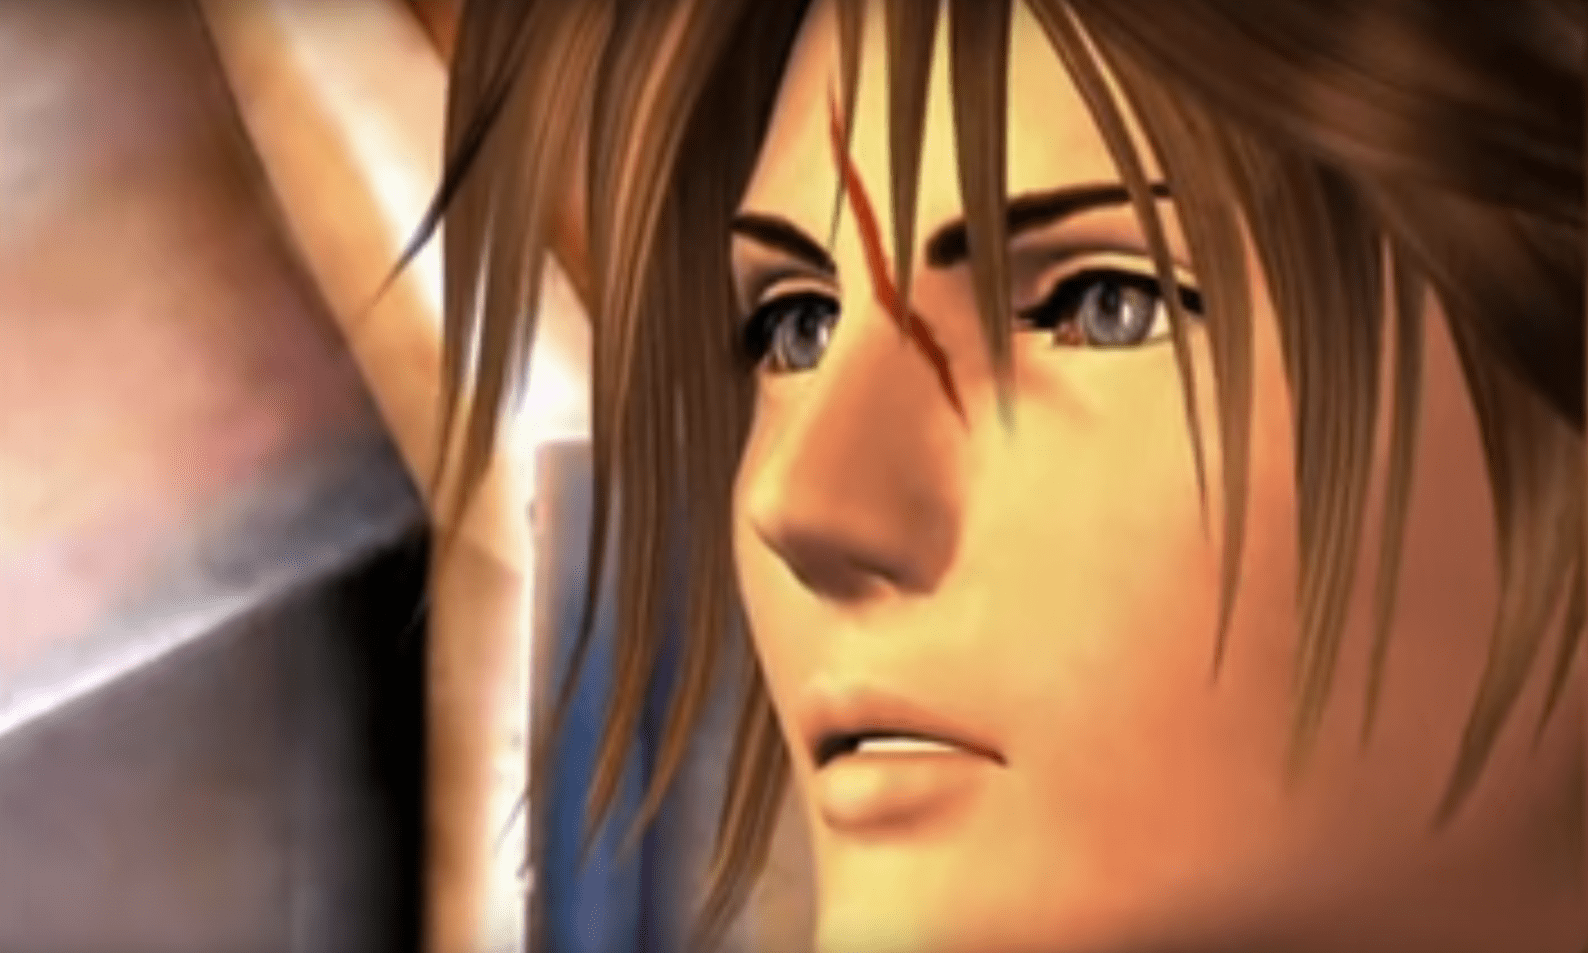 Final Fantasy 7 And Final Fantasy 8 Remastered Editions Might Be Released Together In A Physical Twin Pack Bundle